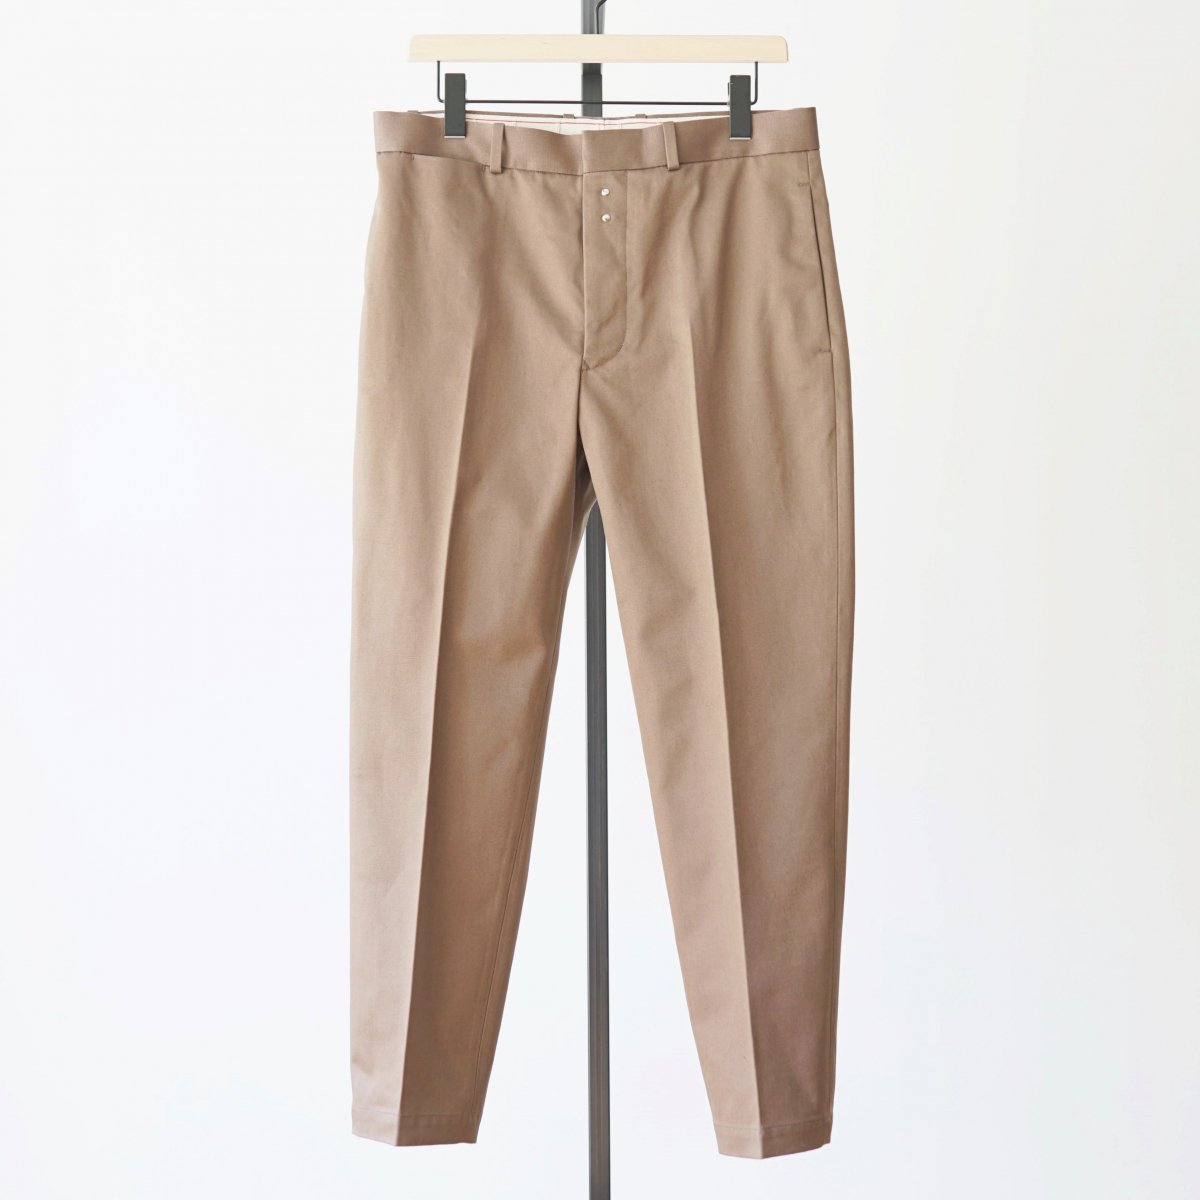 【Scye】SAN JOAQUIN COTTON LOOSE FIT TAPERED TROUSERS - GREYSH BROWN